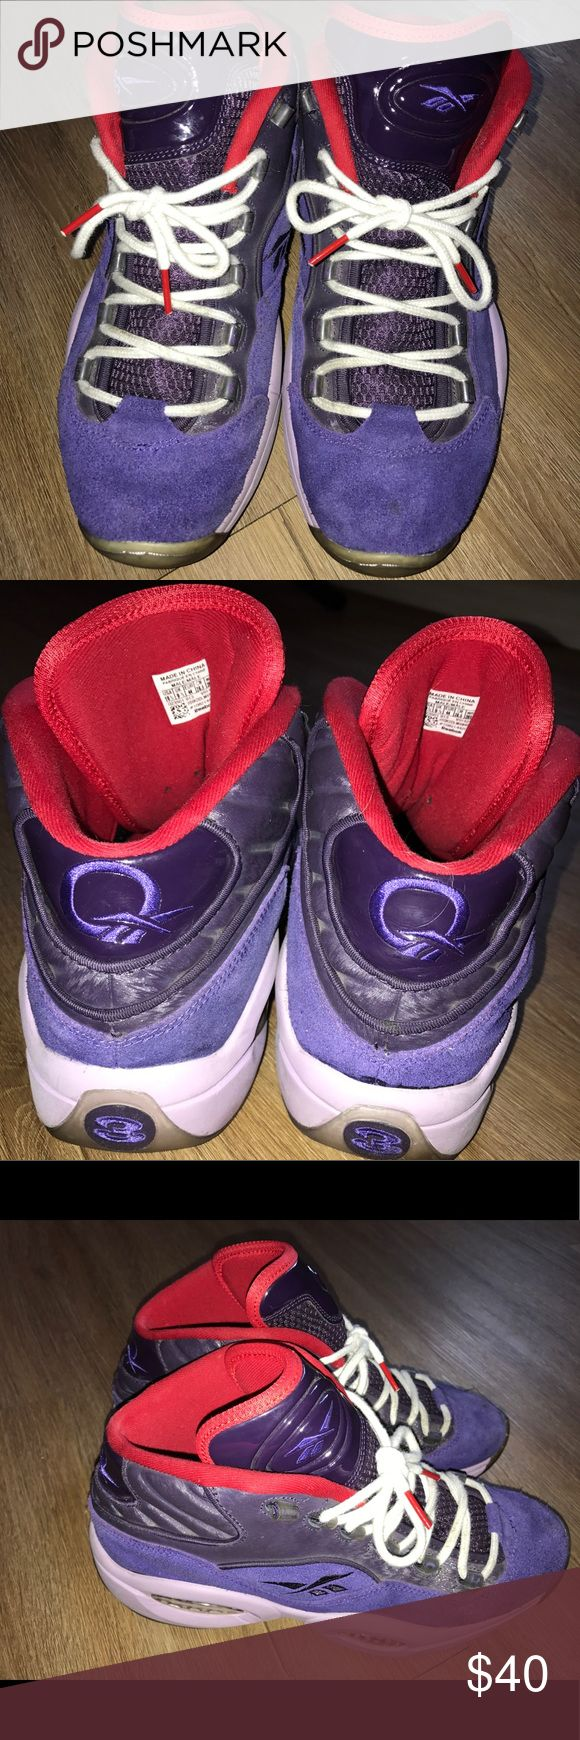 Men's Reebok Questions by Allen Iverson Purple and red editions. No defects and in perfect shape. True to size Reebok Shoes Sneakers